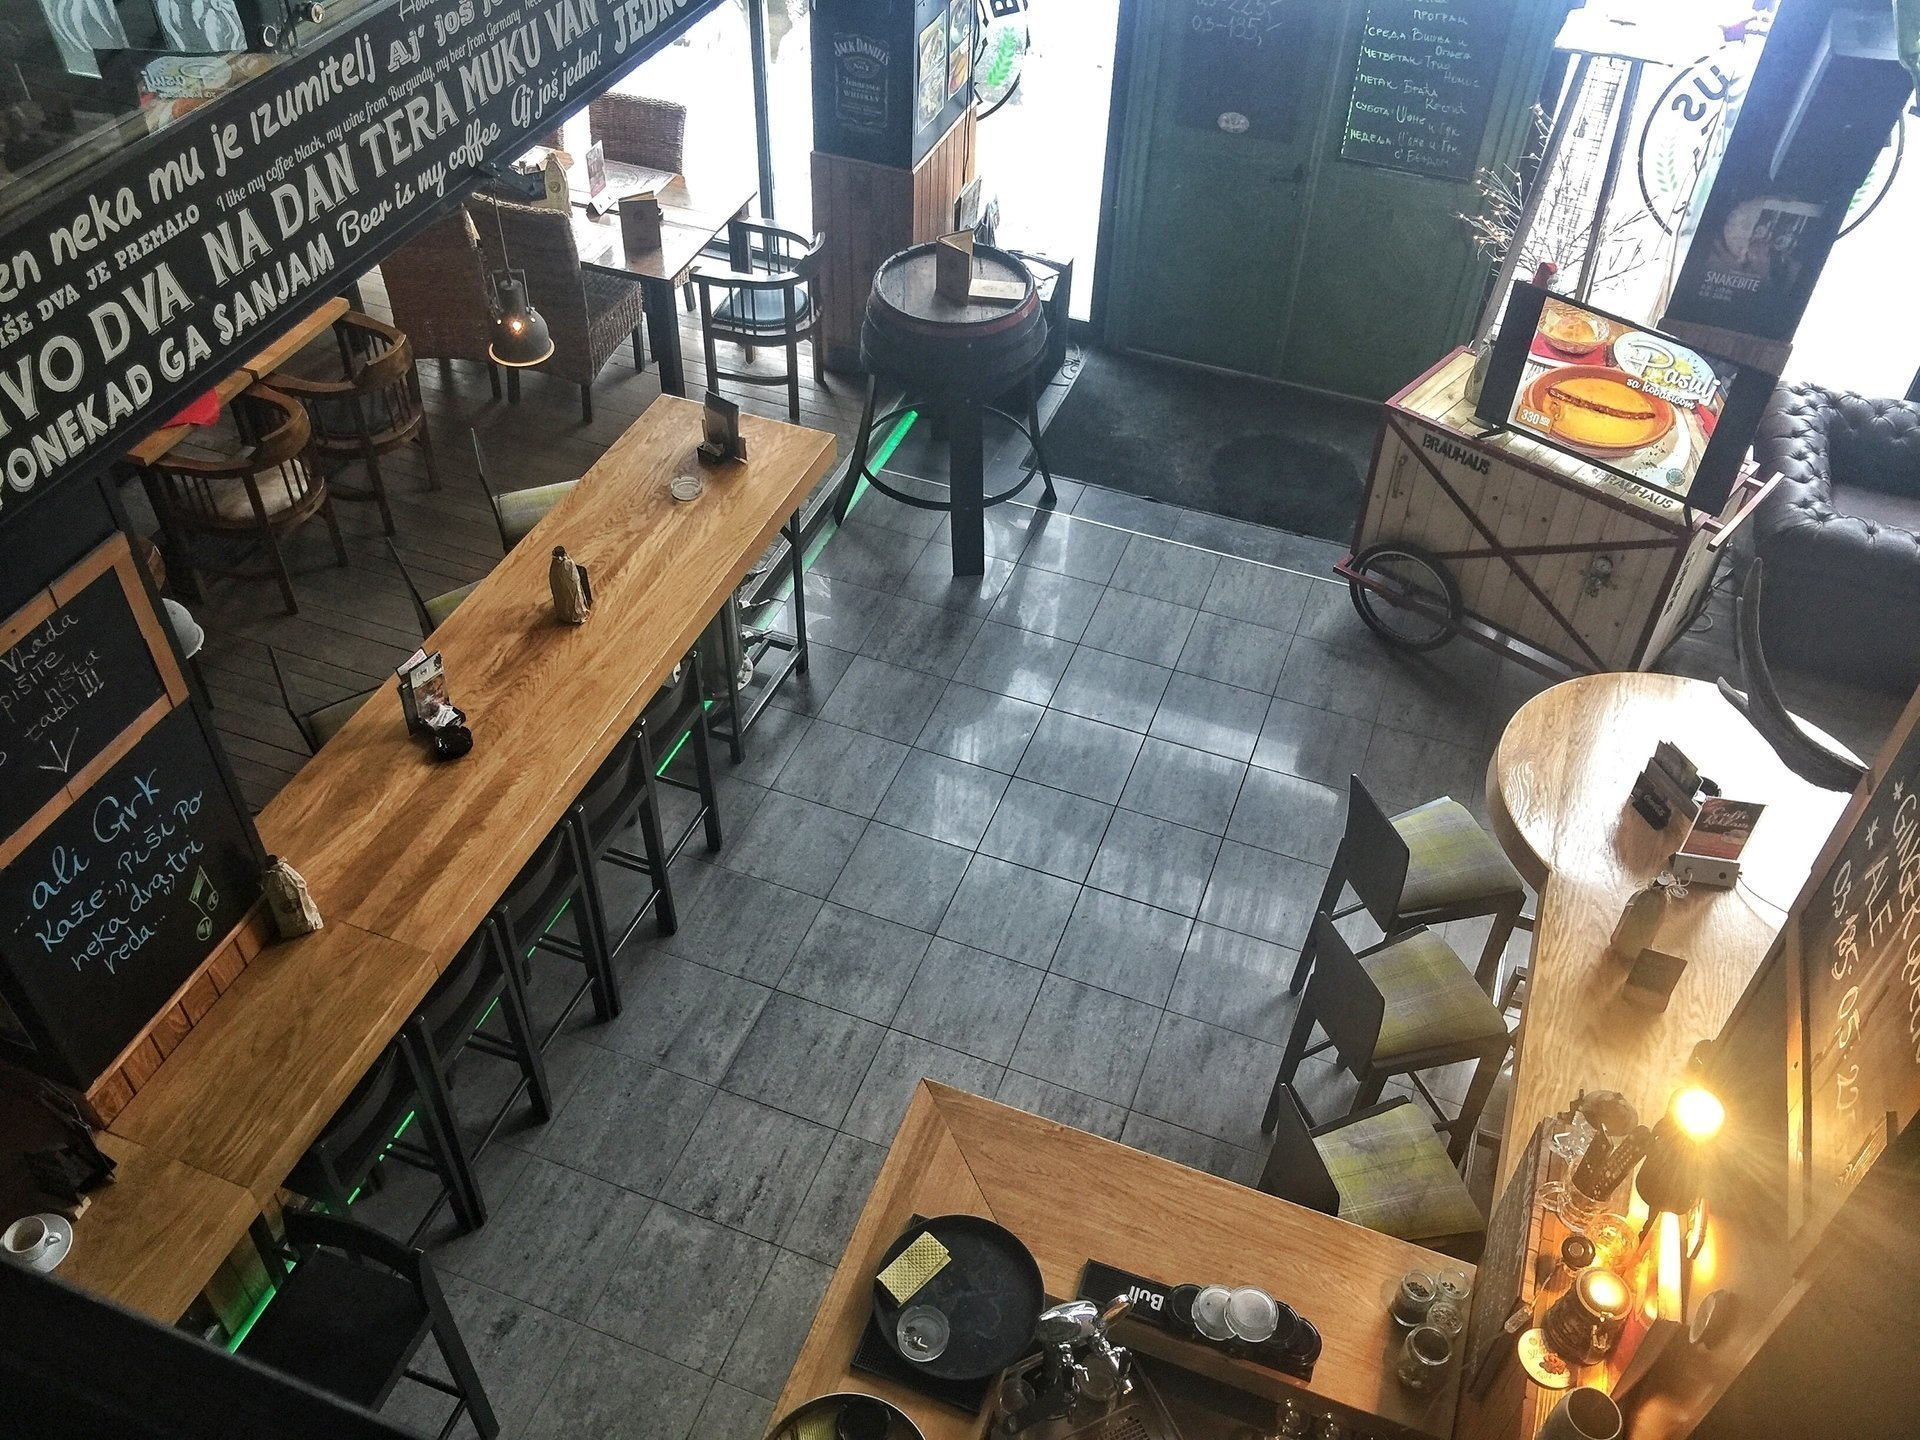 Brauhaus: A Work-Friendly Place in Novi Sad